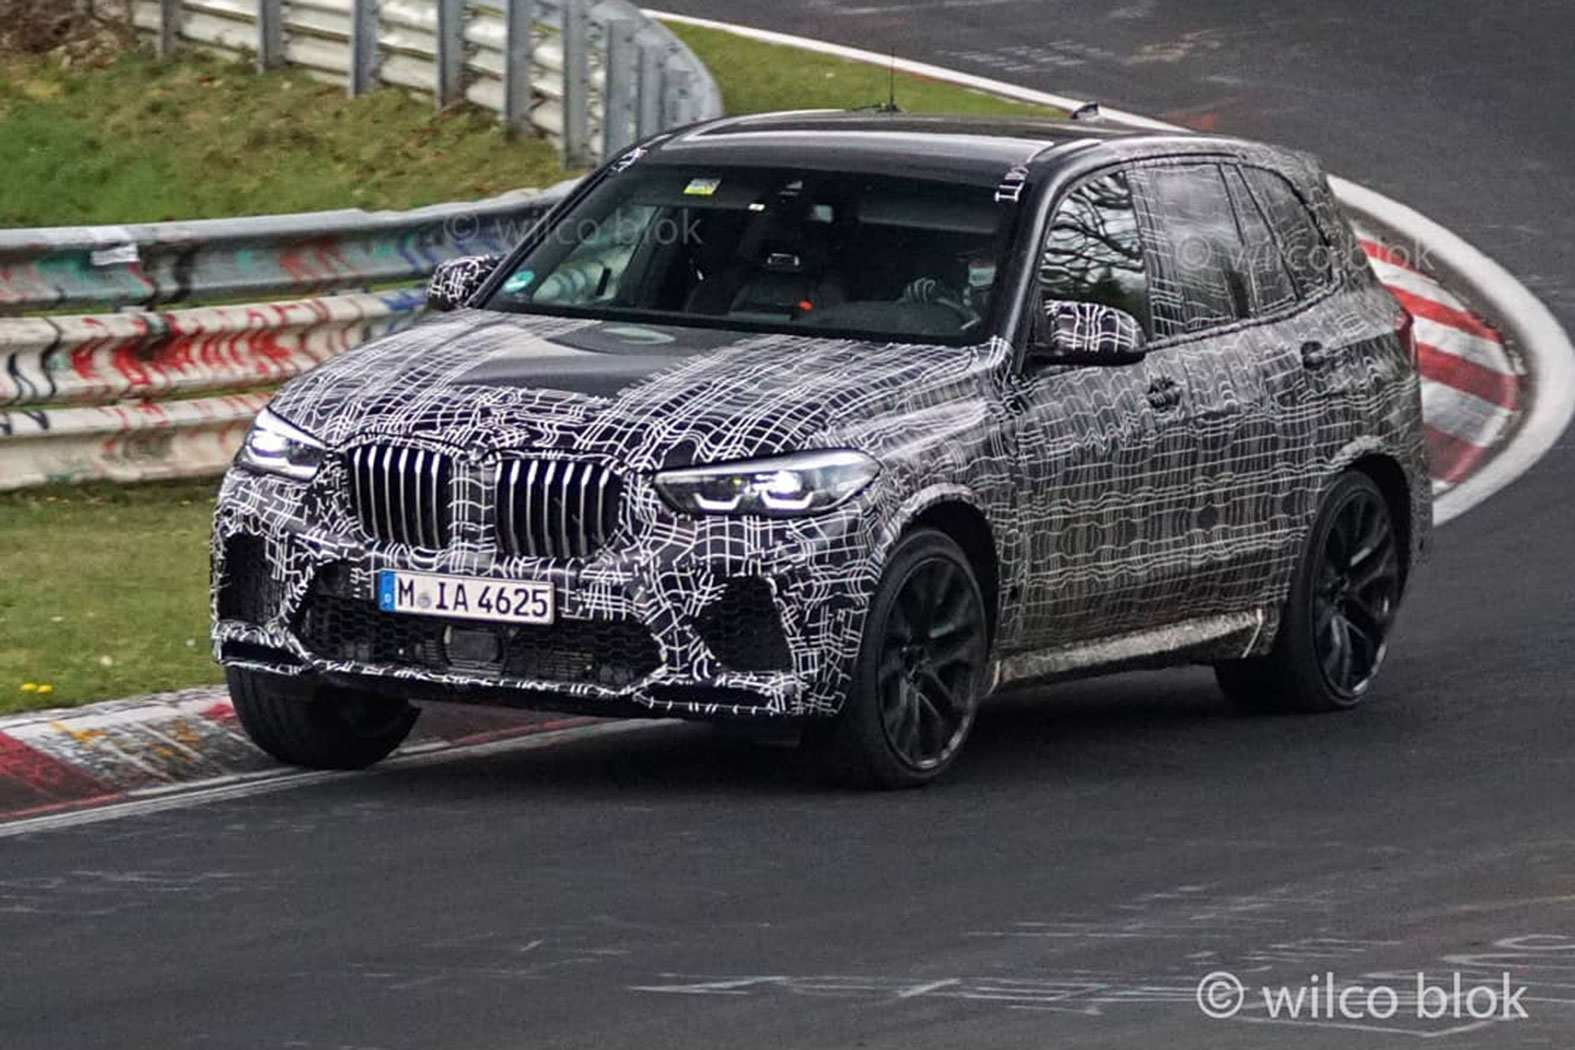 44 Gallery of When Will 2020 BMW X5 Be Released Configurations for When Will 2020 BMW X5 Be Released